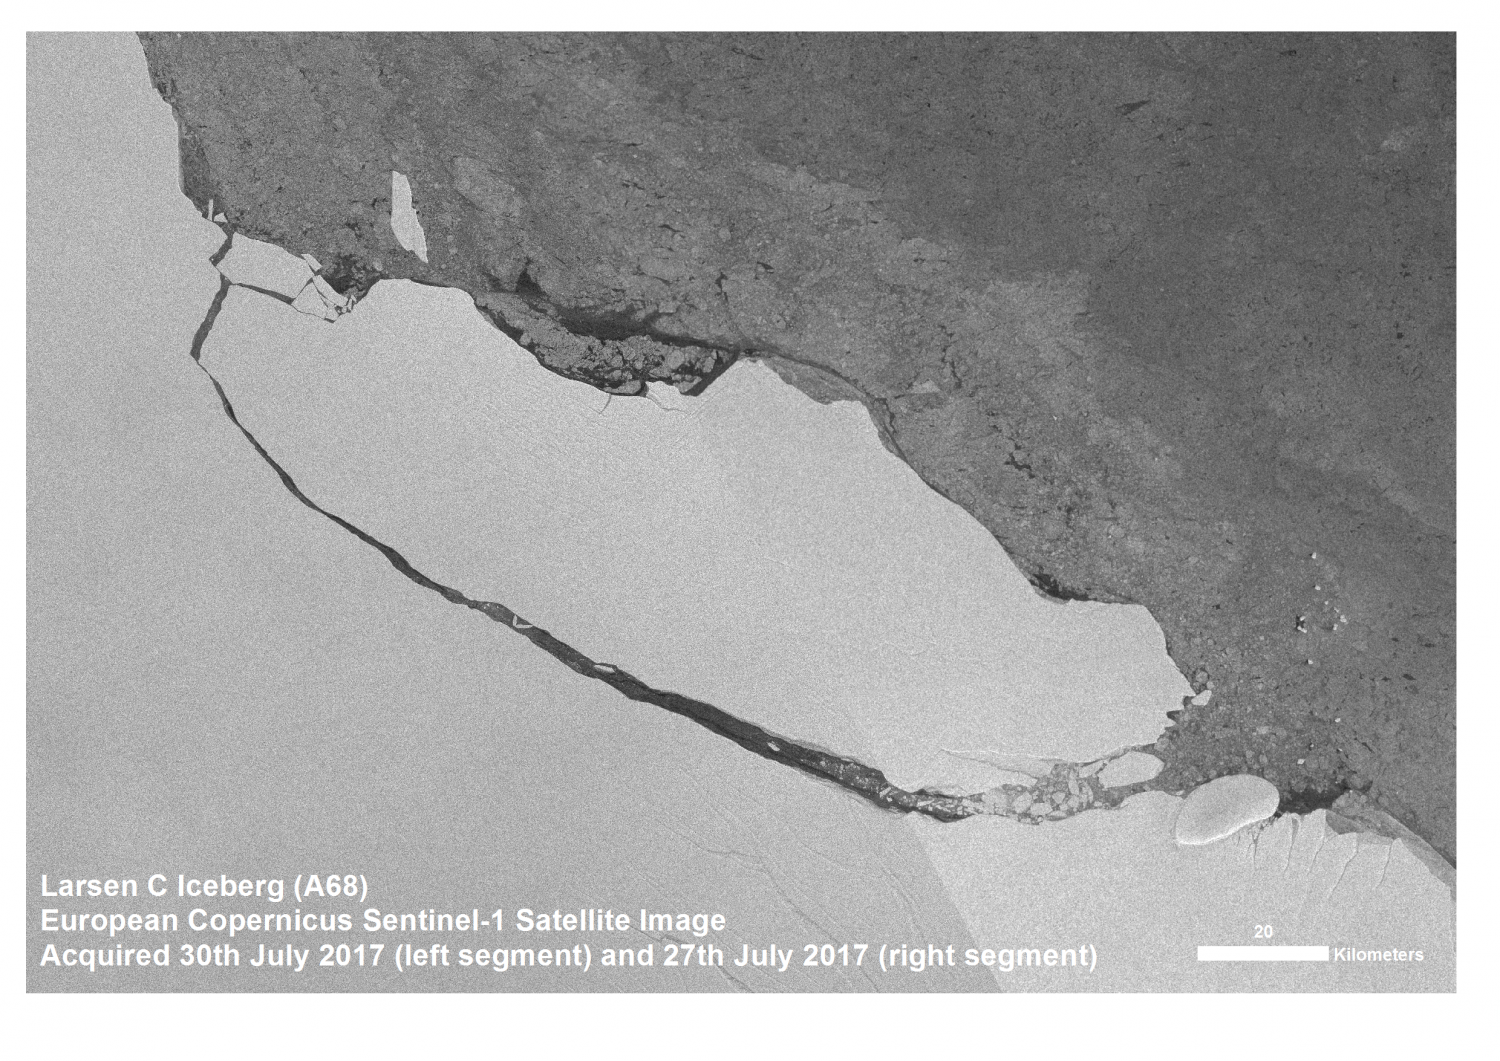 The Larsen-C iceberg breakaway story might not be over yet